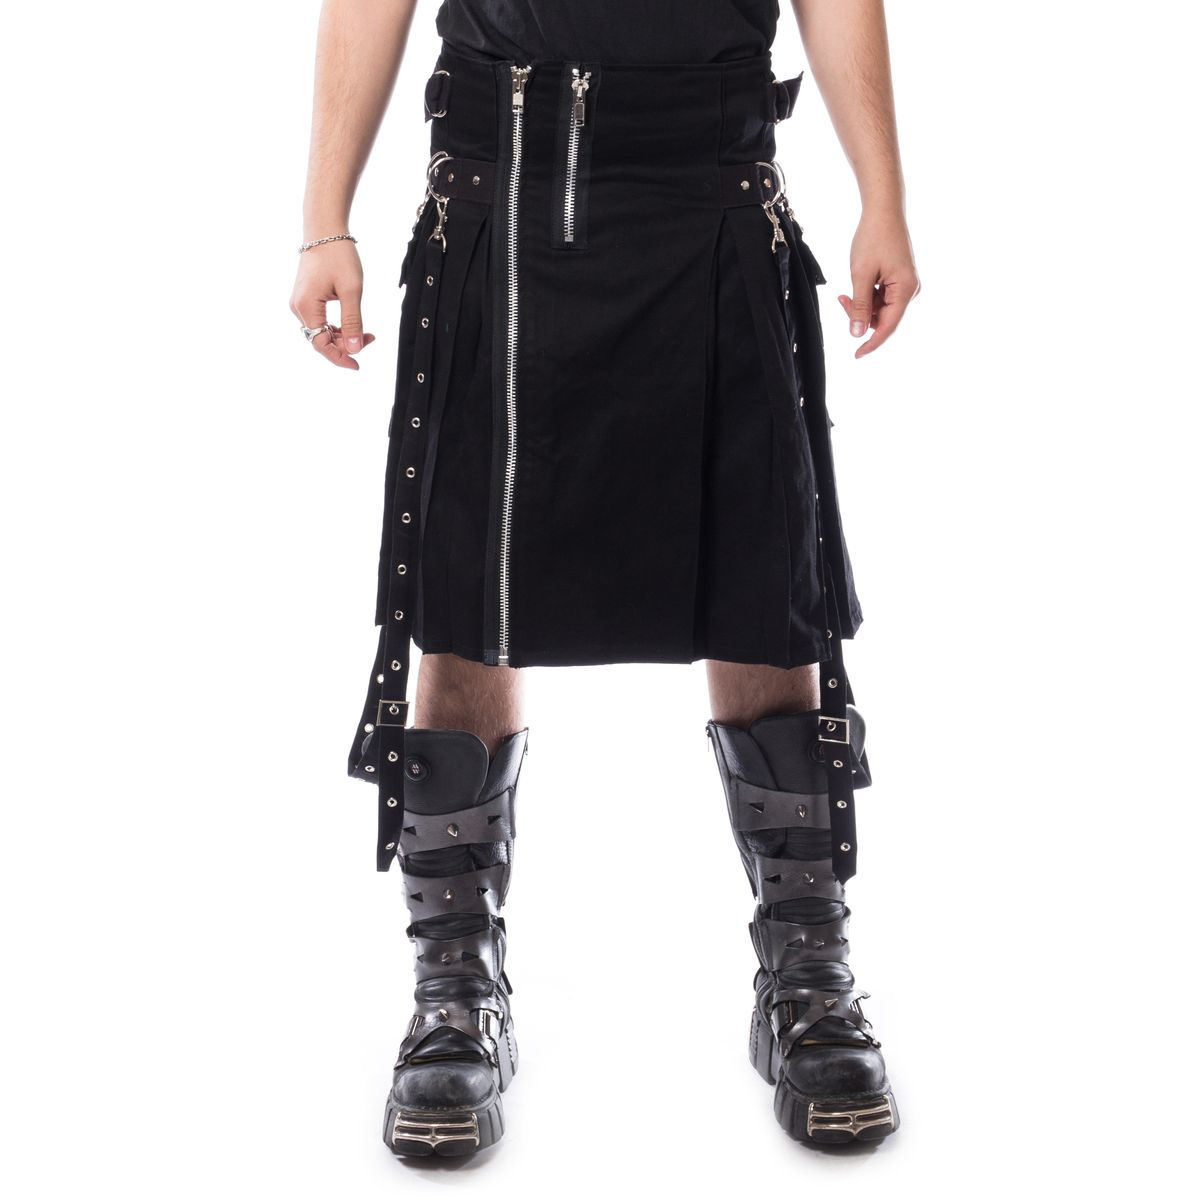 kilt pánský CHEMICAL BLACK - CARL - BLACK - POI759 S